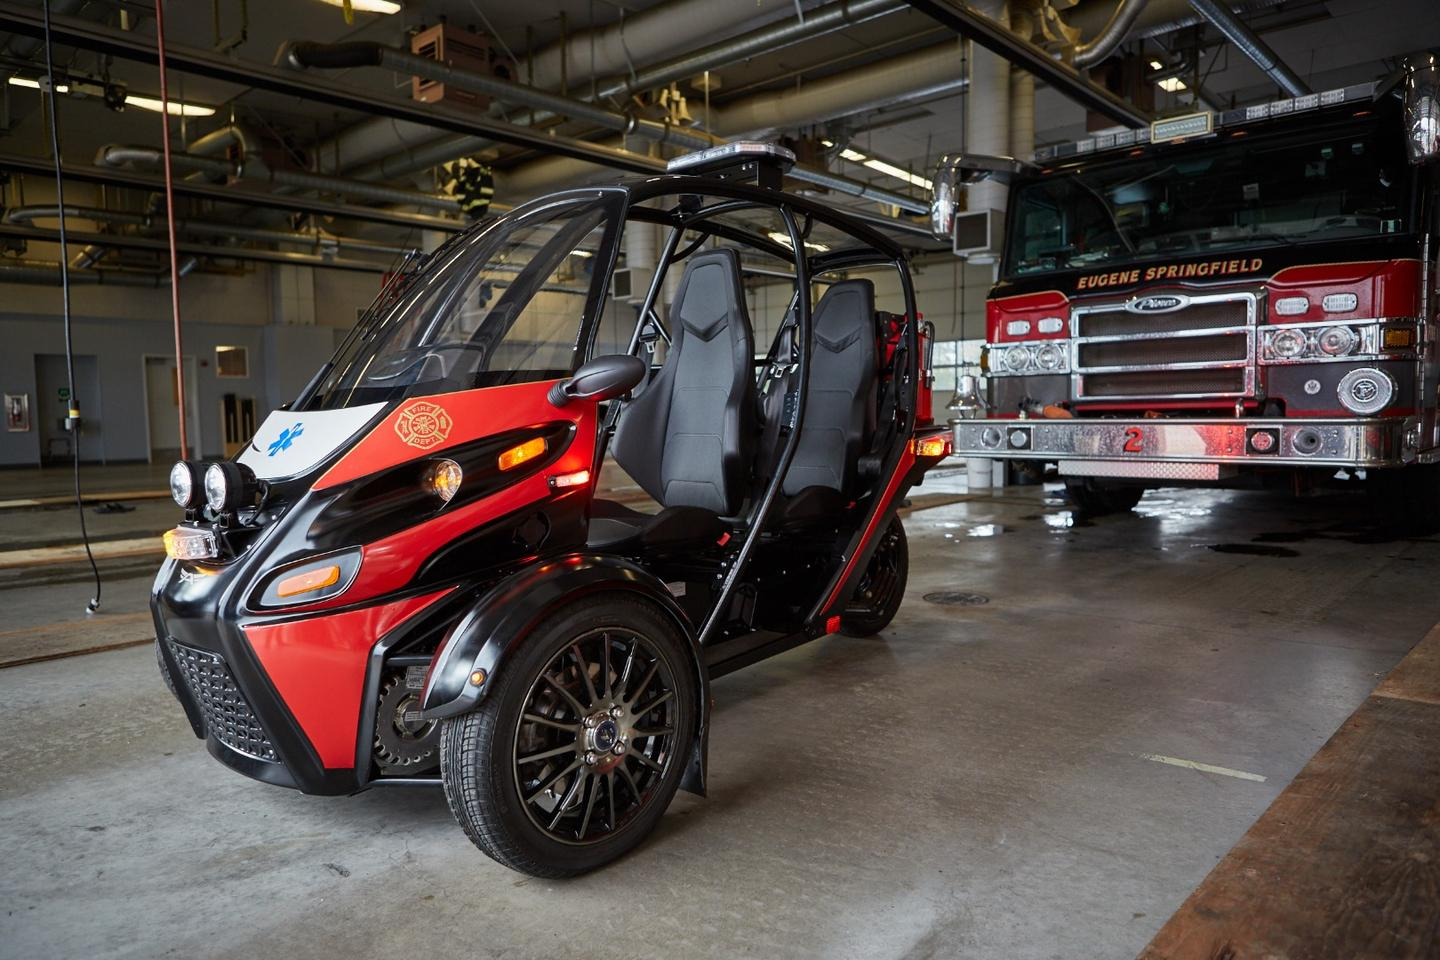 The Rapid Responder is based on the same platform as Arcimoto's Evergreen Edition consumer flagship